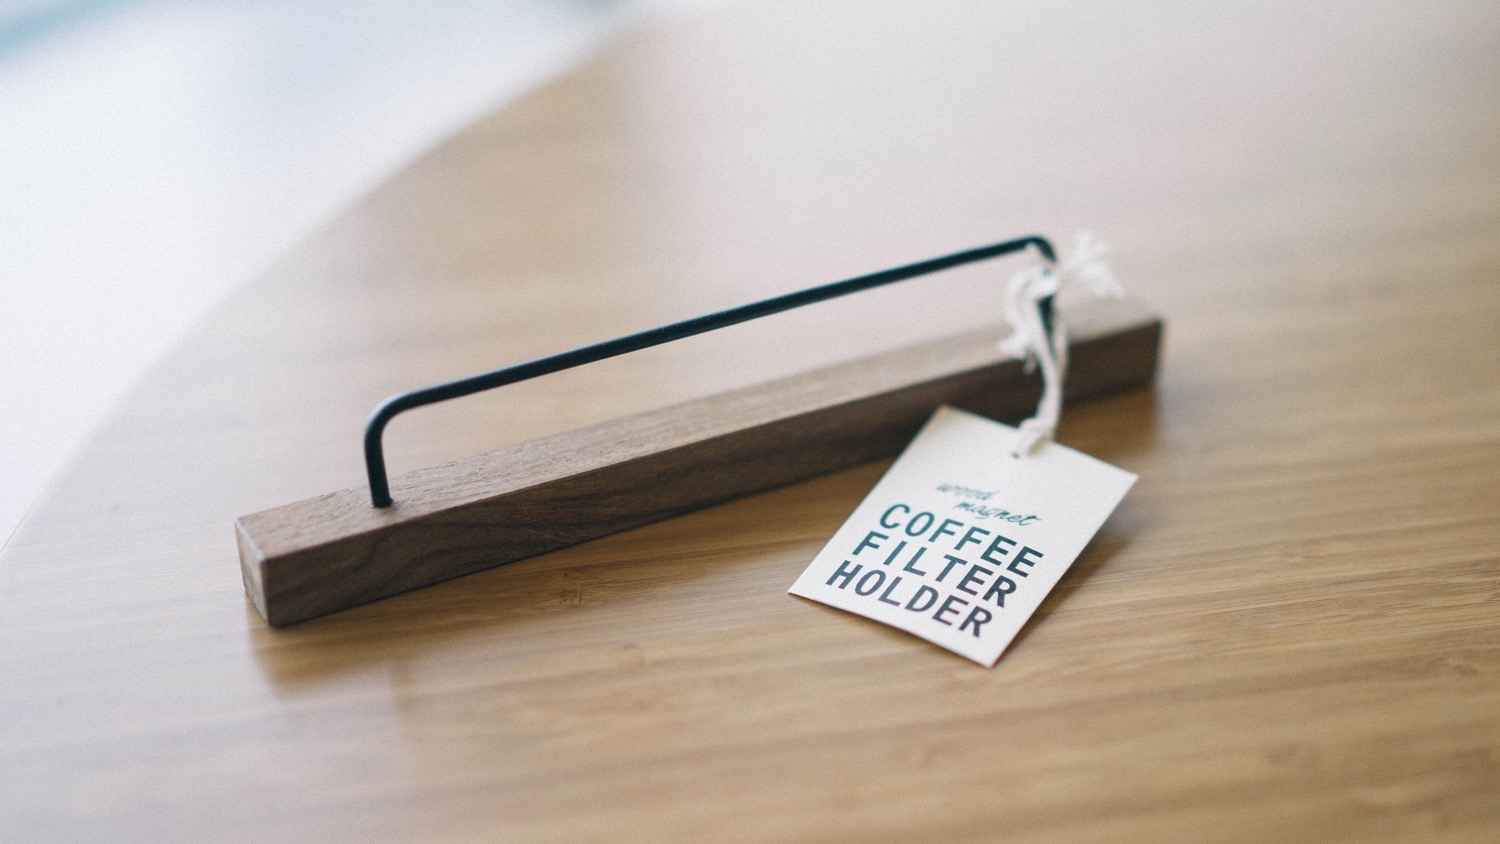 Coffee fileter holder 1